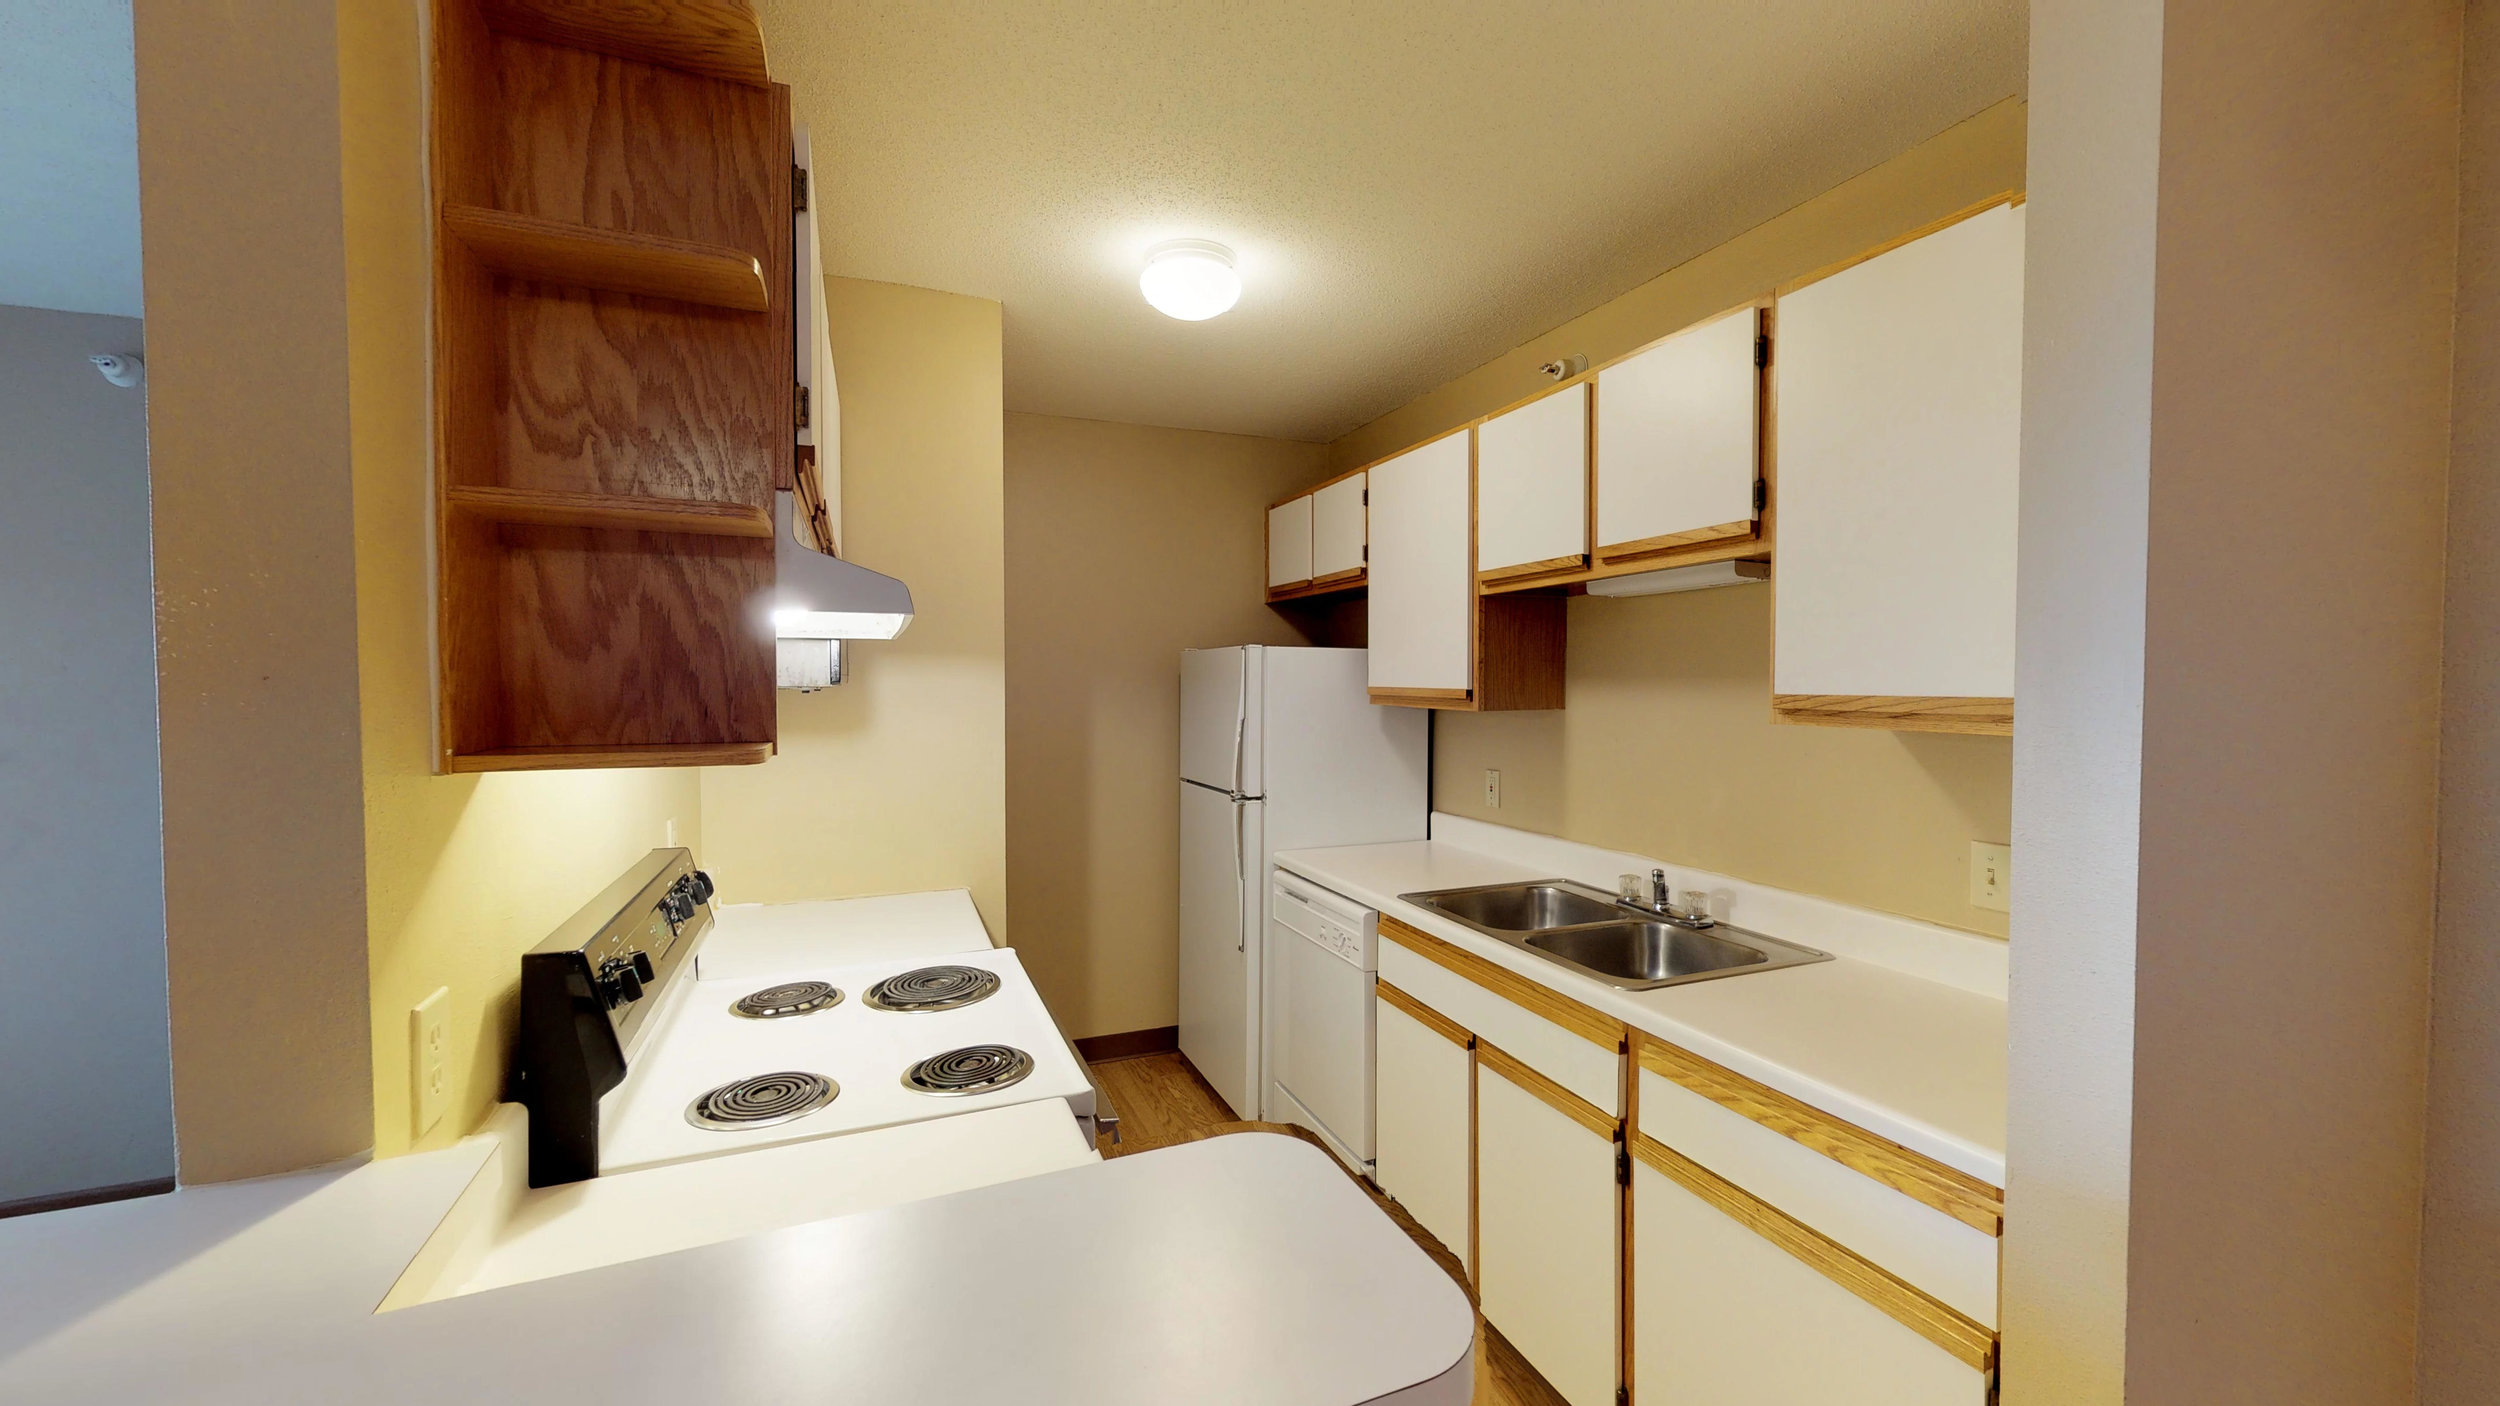 Kitchens With Tons of Cabinet Space